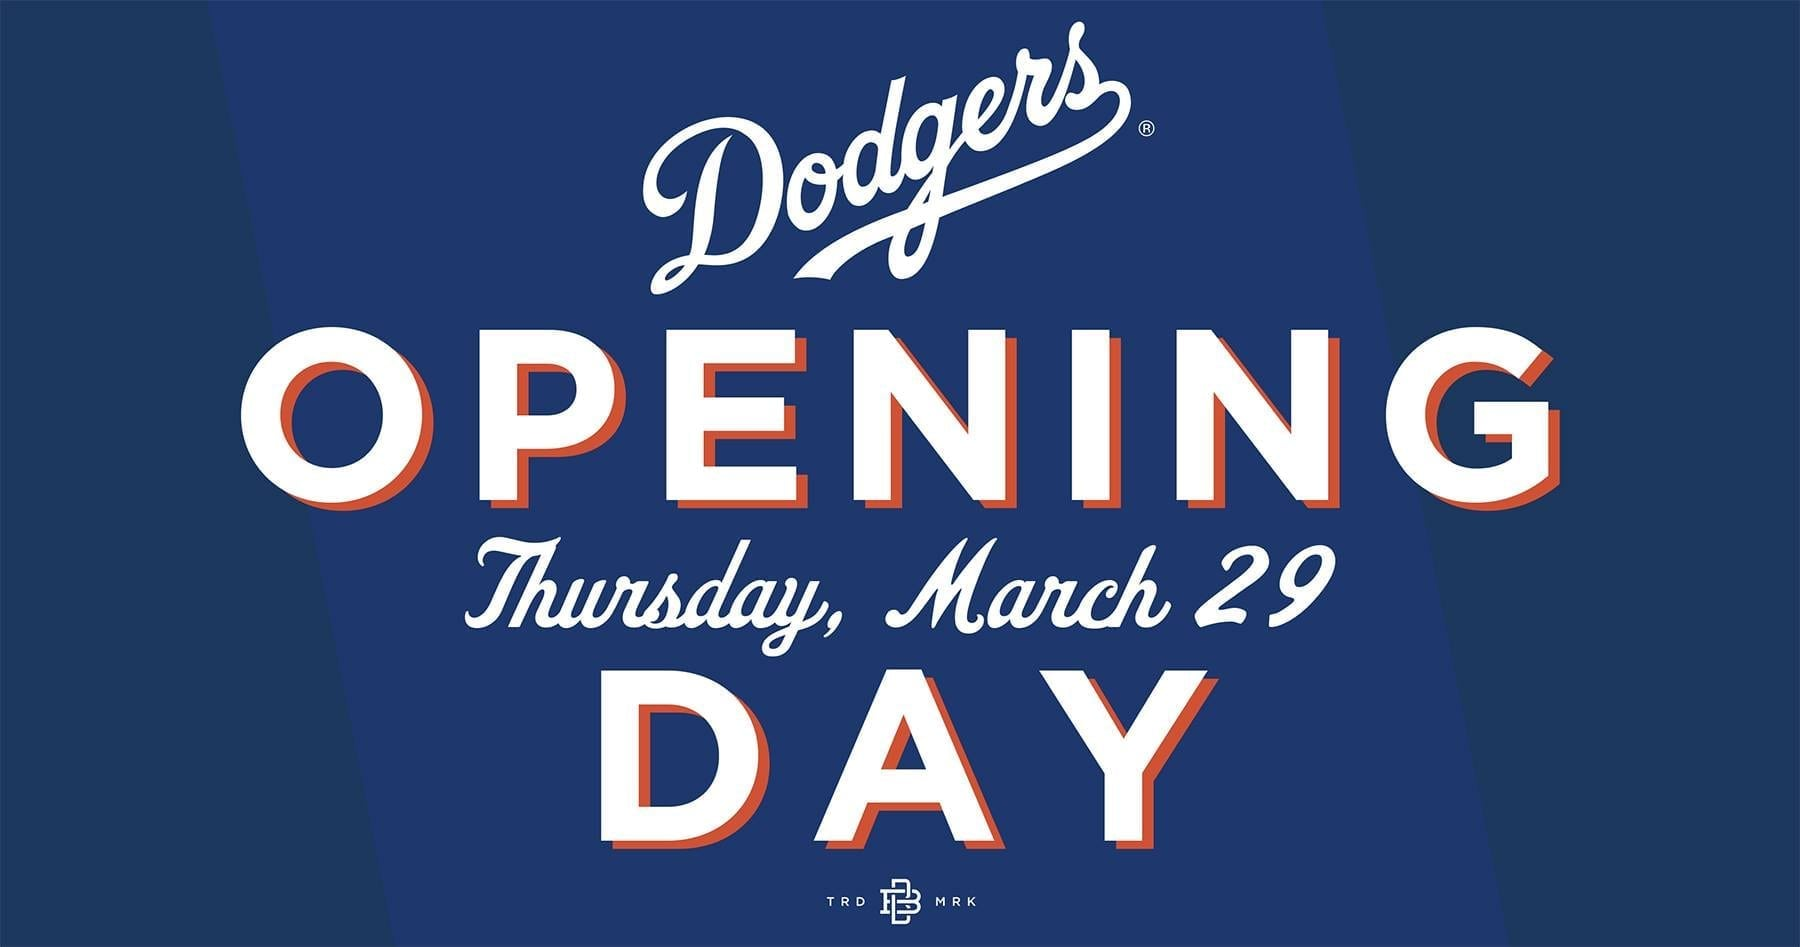 Dodgers Opening Day Party at Boomtown Brewery